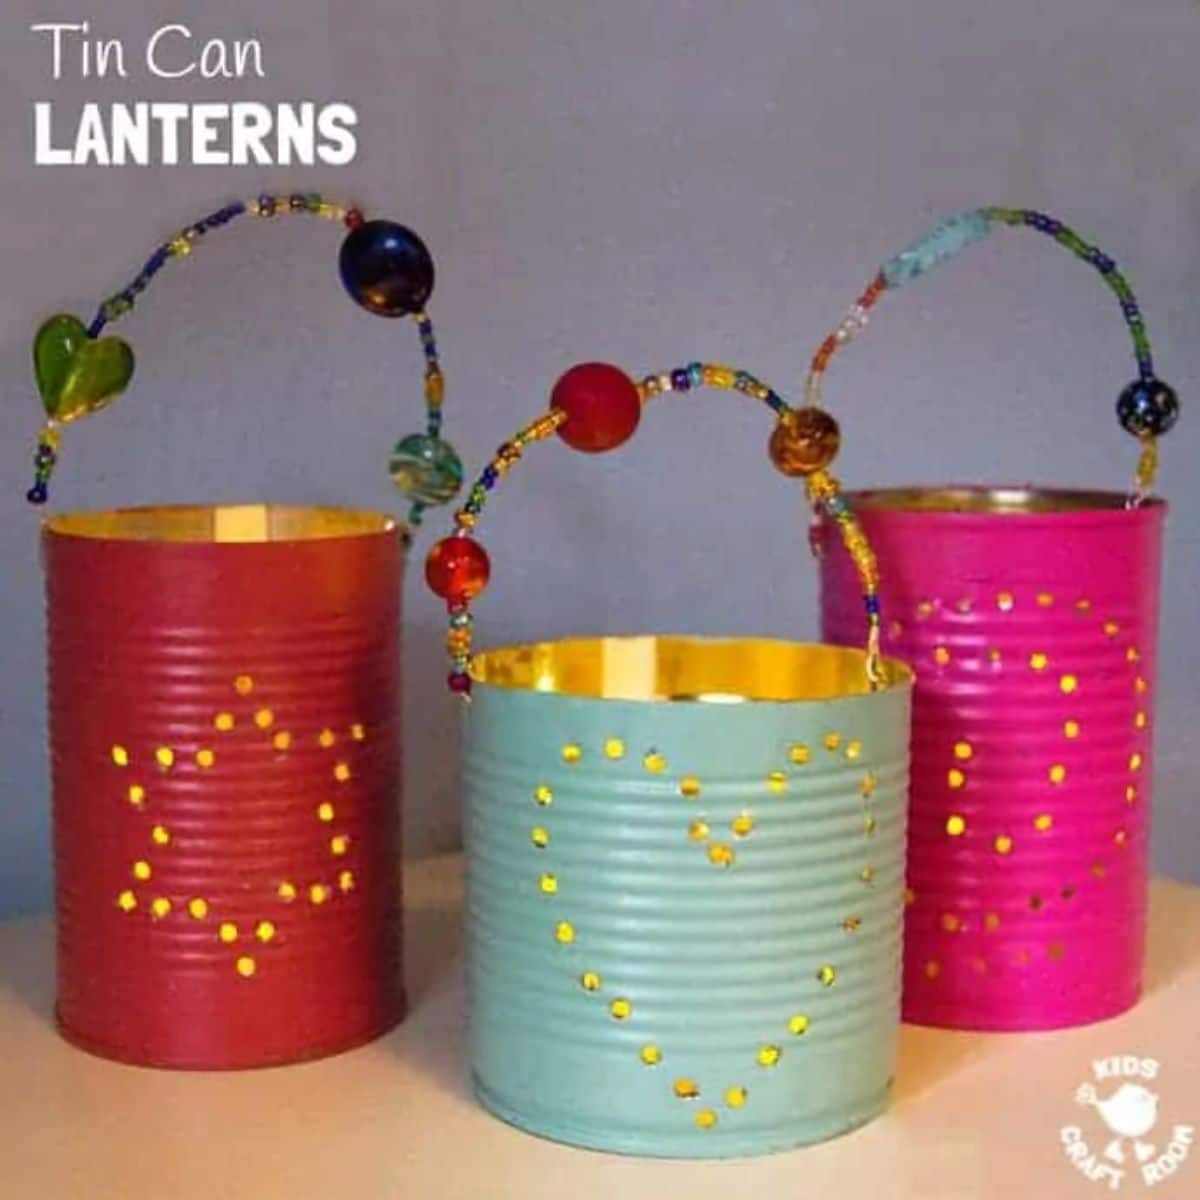 """The text reads """"Tin Can Lanterns"""" The image is of 3 tin cans, painted red, turquoise and pink. Hoeles are punched in the cans and beaded handles are attached to the rims"""